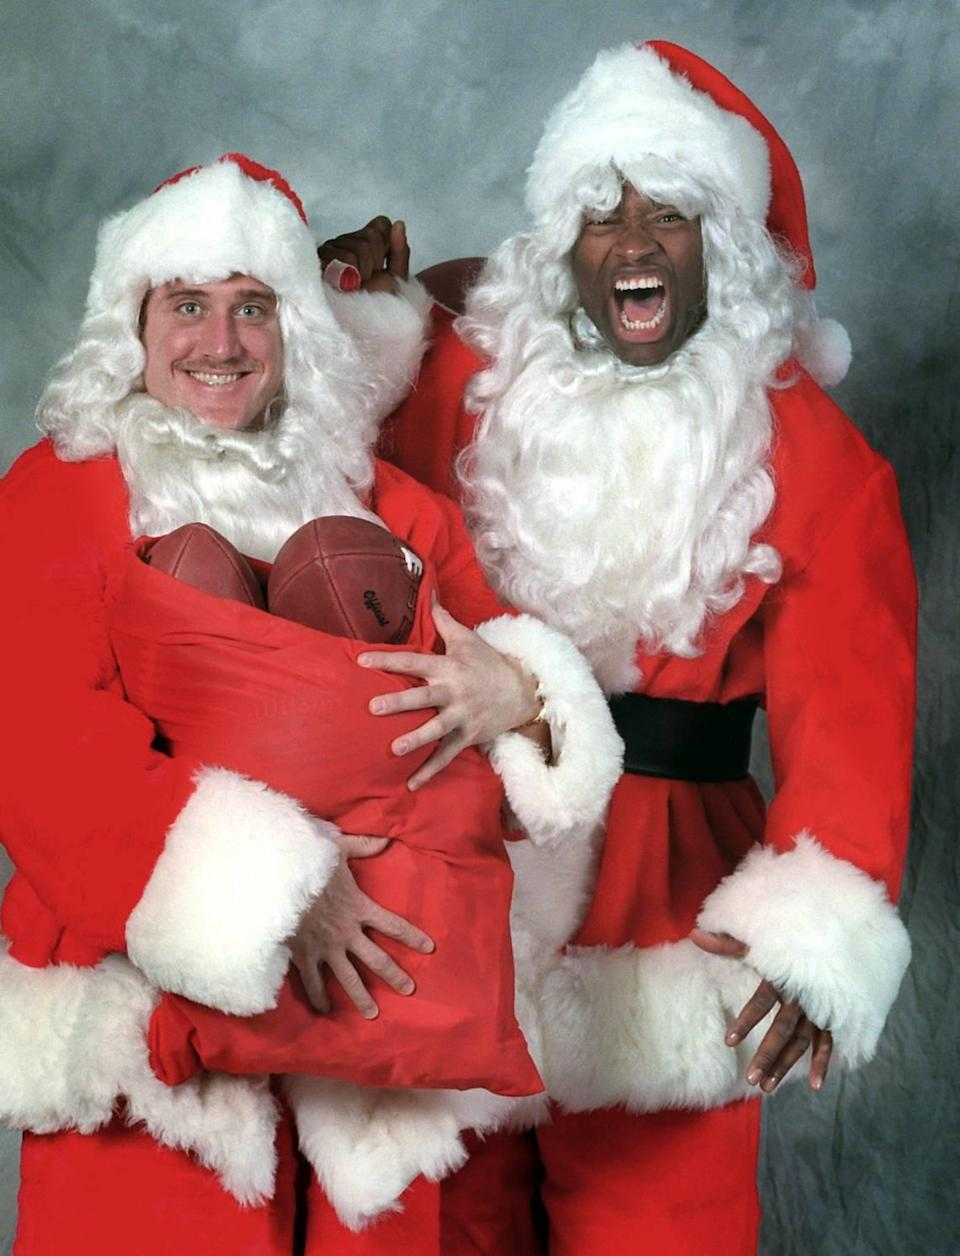 """In 1996, linebackers Kevin Greene (left) and Lamar Lathon dressed up as Santa Claus for a Charlotte Observer photo. Greene and Lathon were nicknamed """"Salt and Pepper."""" In that season and combined for 28 sacks, the most by a pass-rushing duo in Carolina history."""